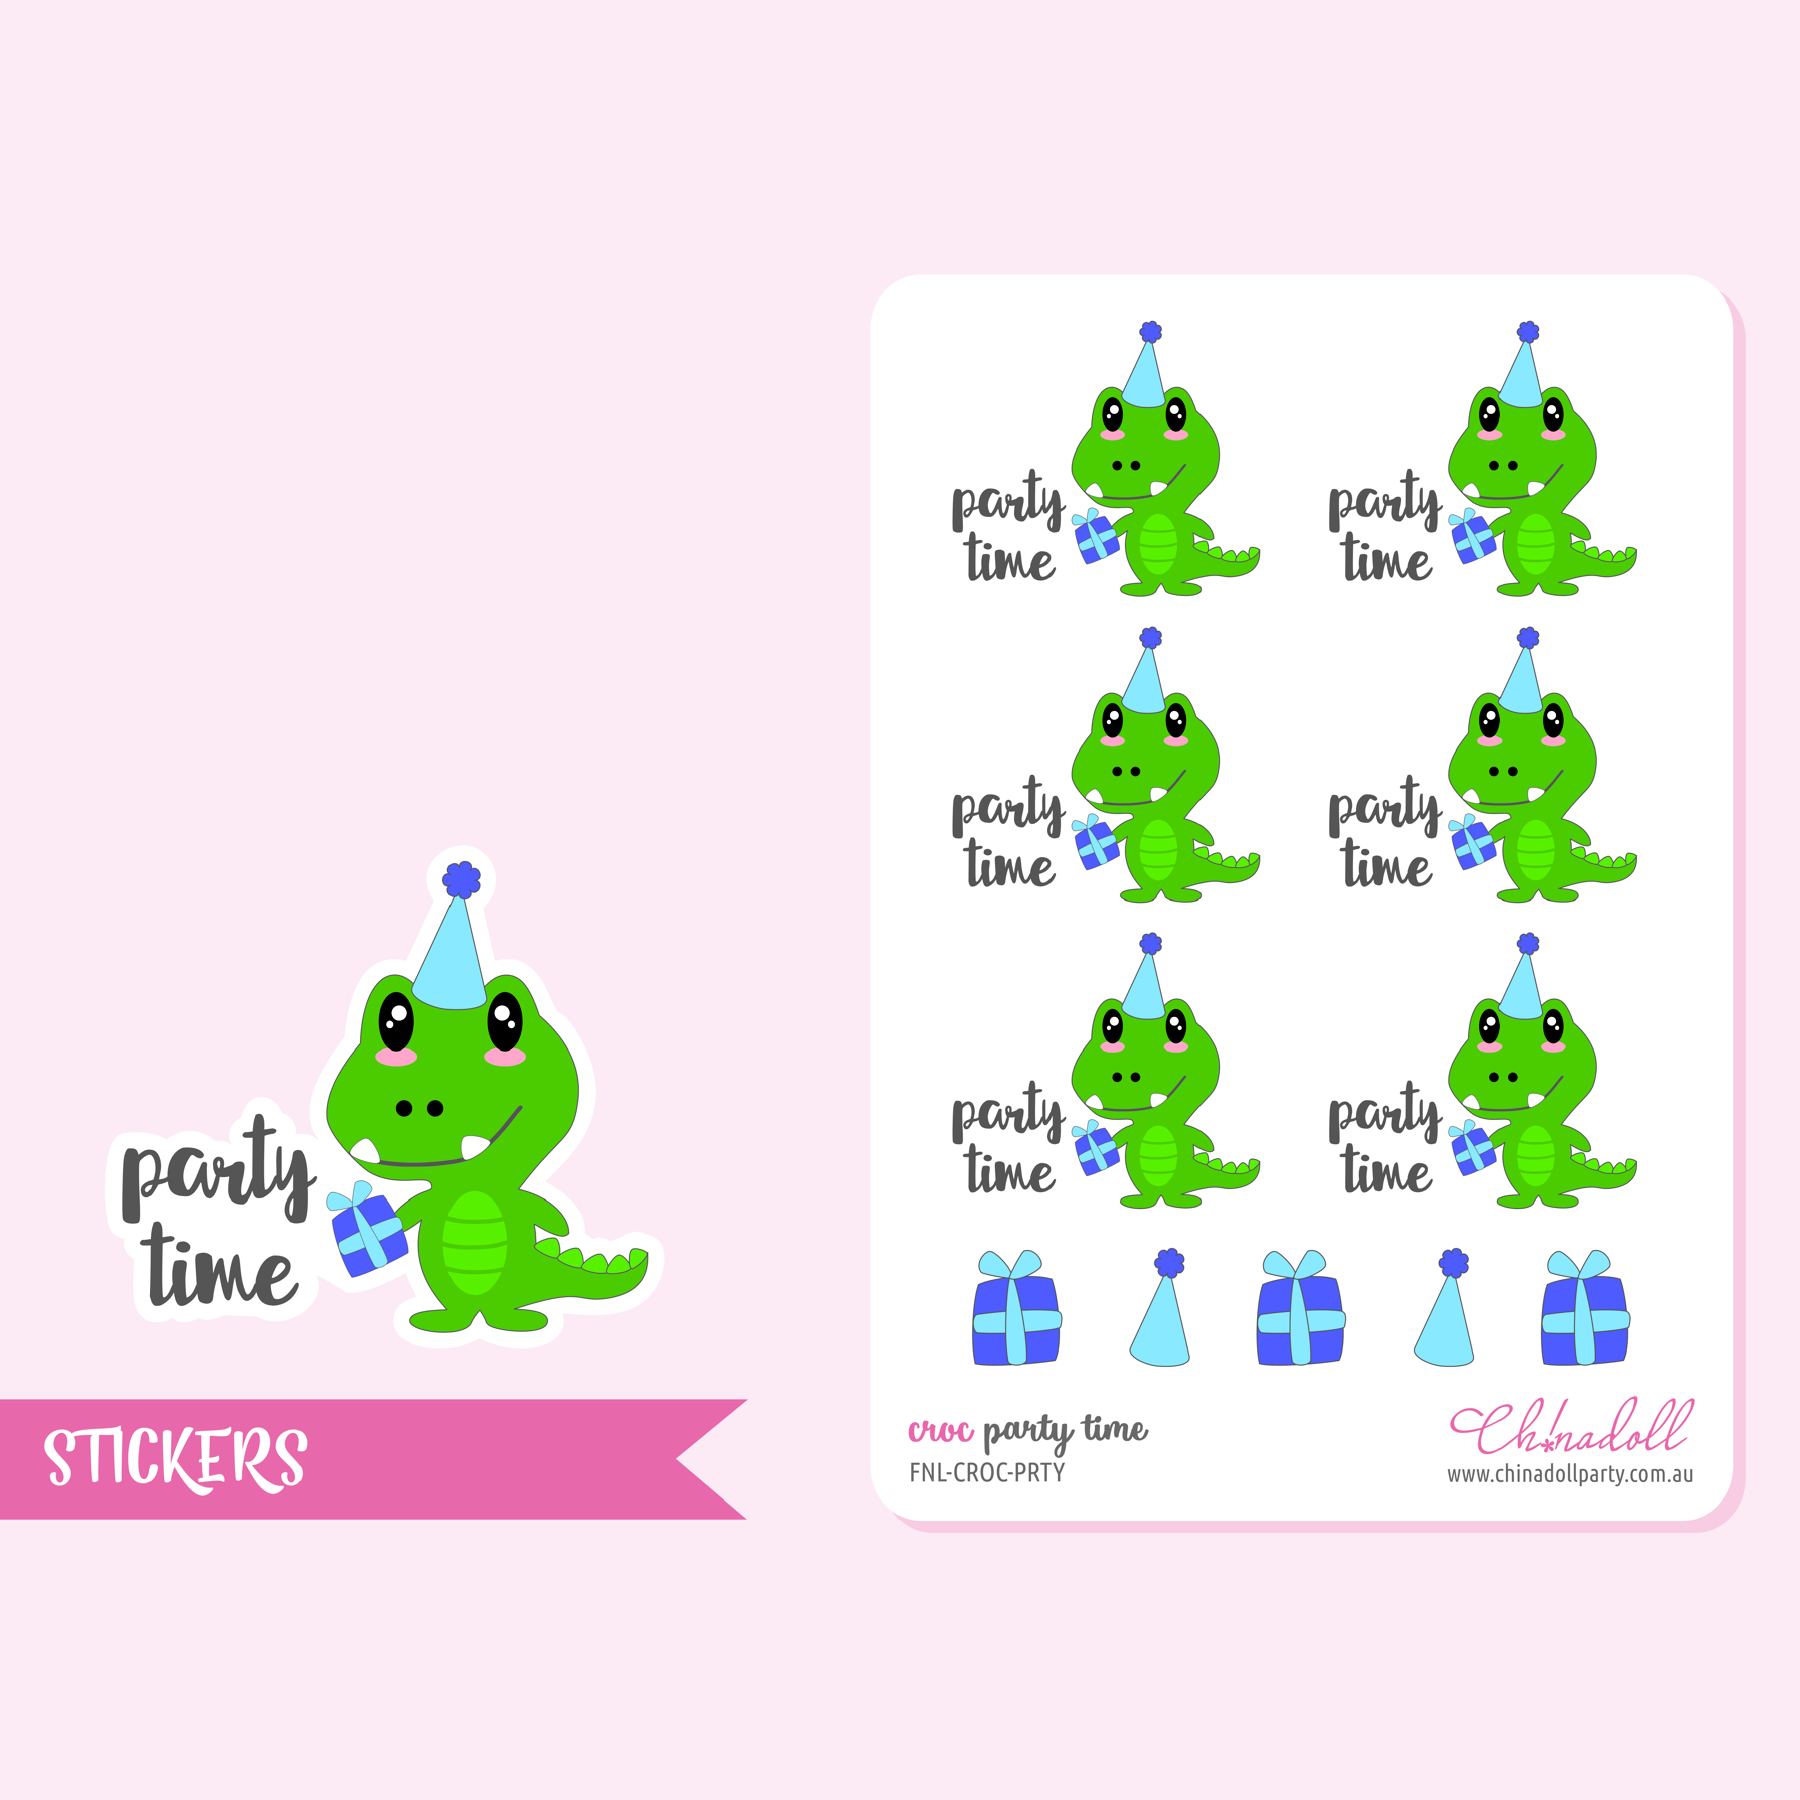 croc - party time | sticker sheet | FNL-CROC-PRTY